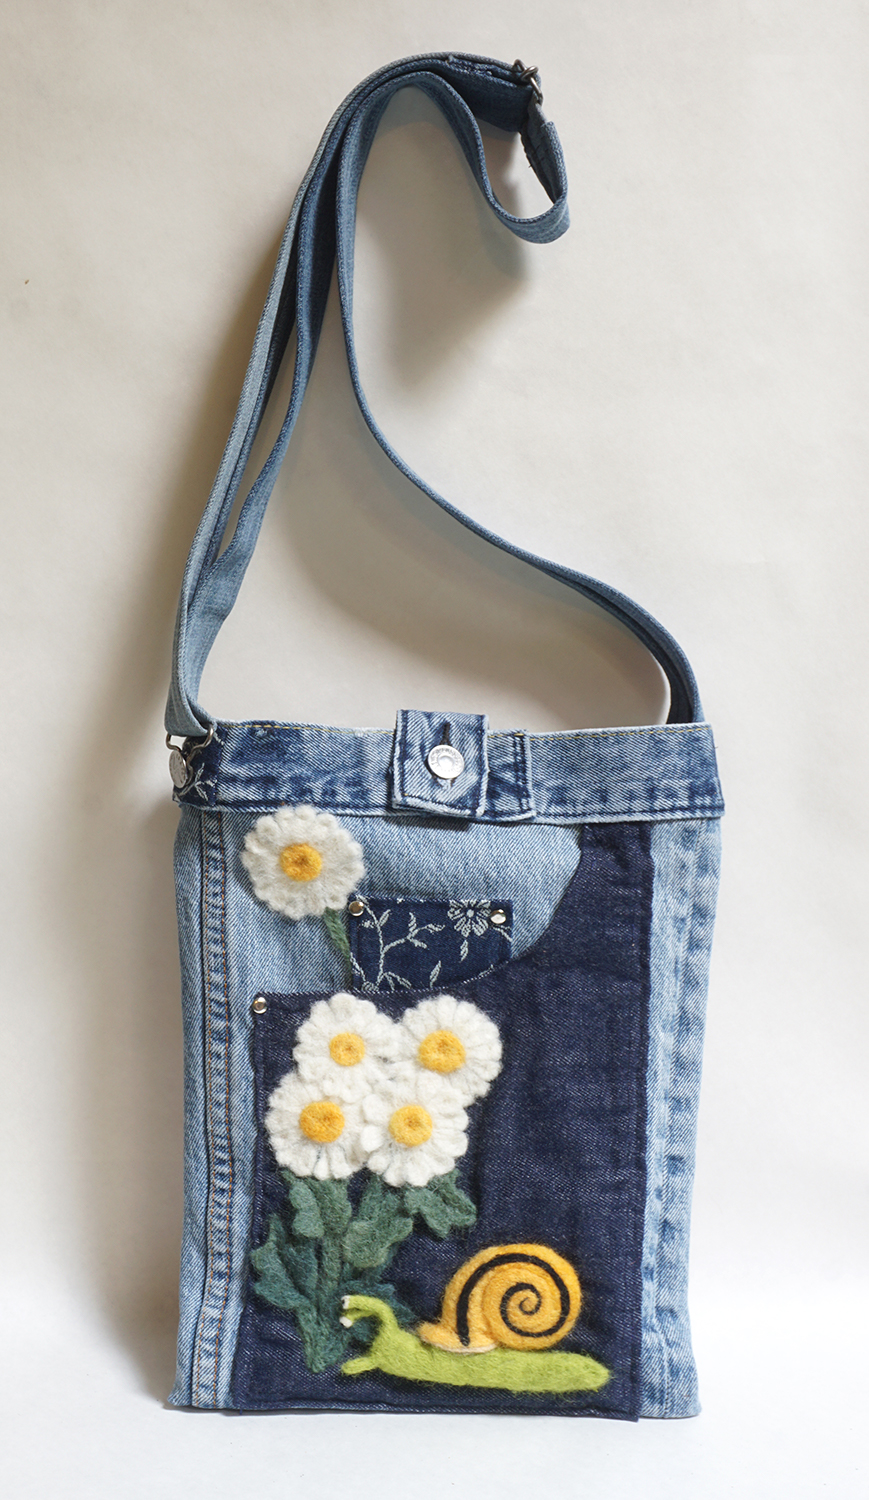 Slow Daisies up-cycled jean bag